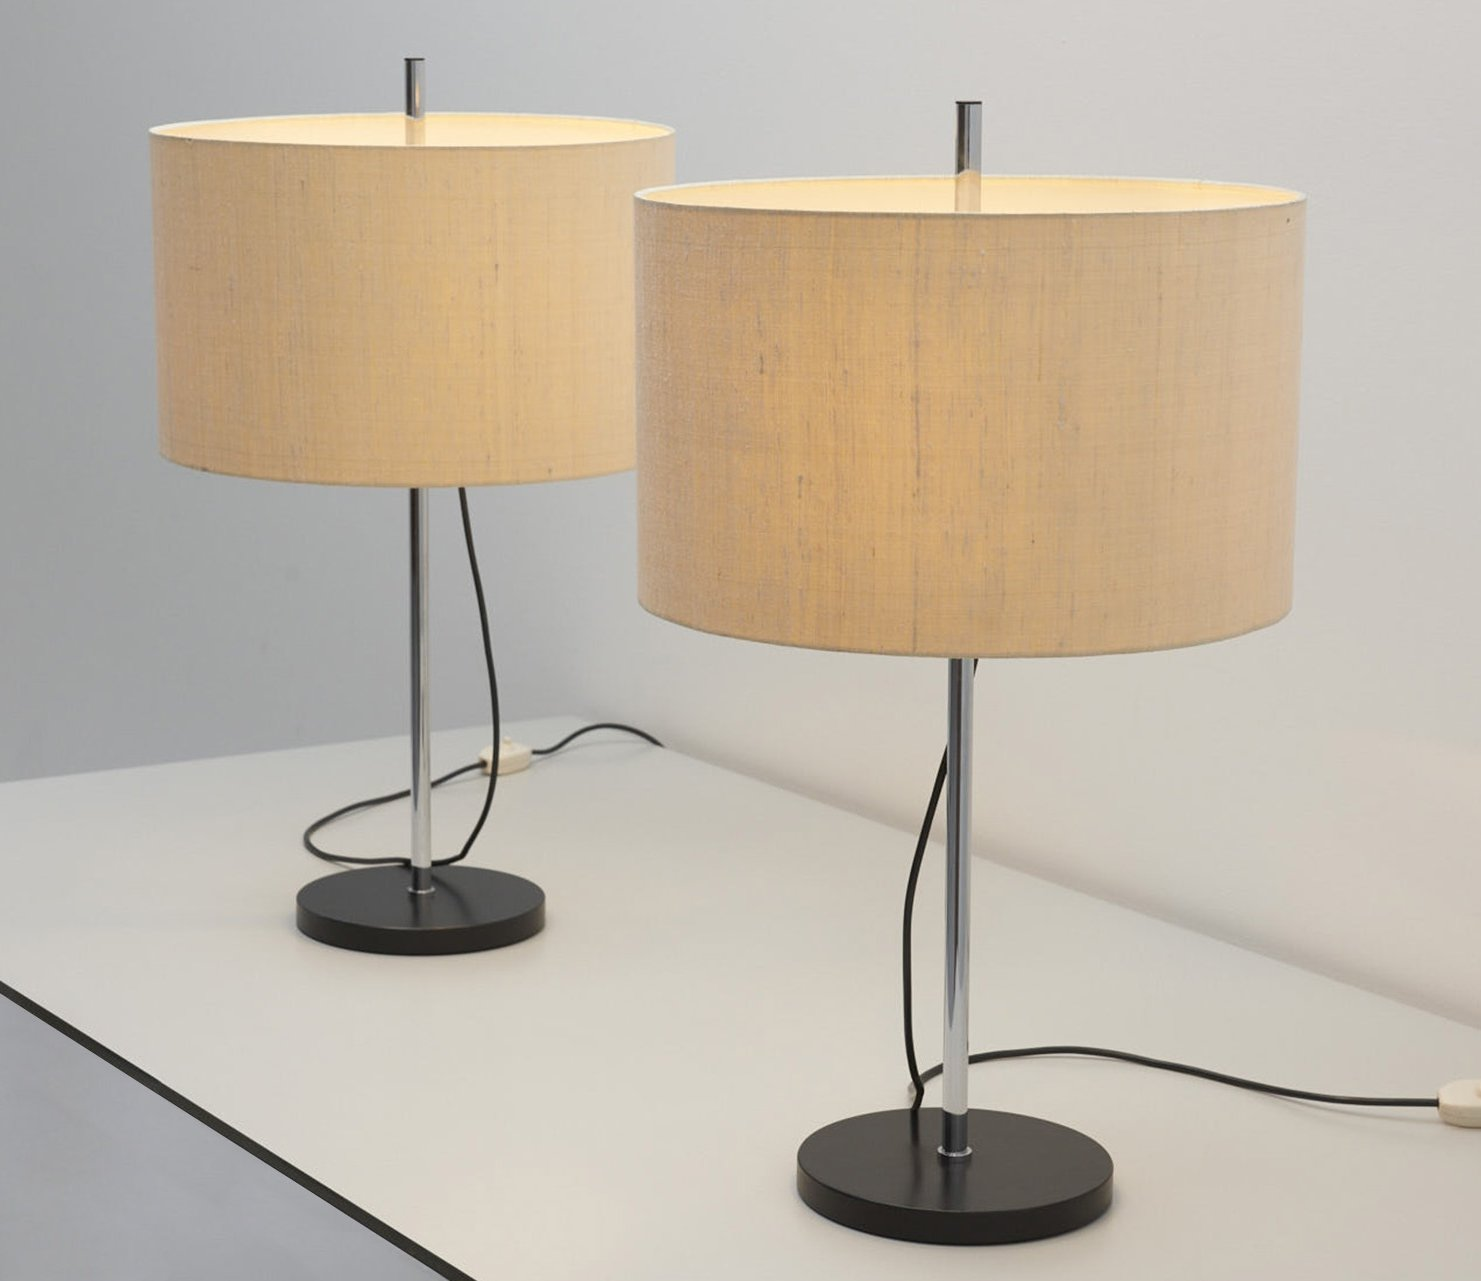 Pair Of Table Lamps By Staff Leuchten With Original Adjustable Lamp Shades 96719